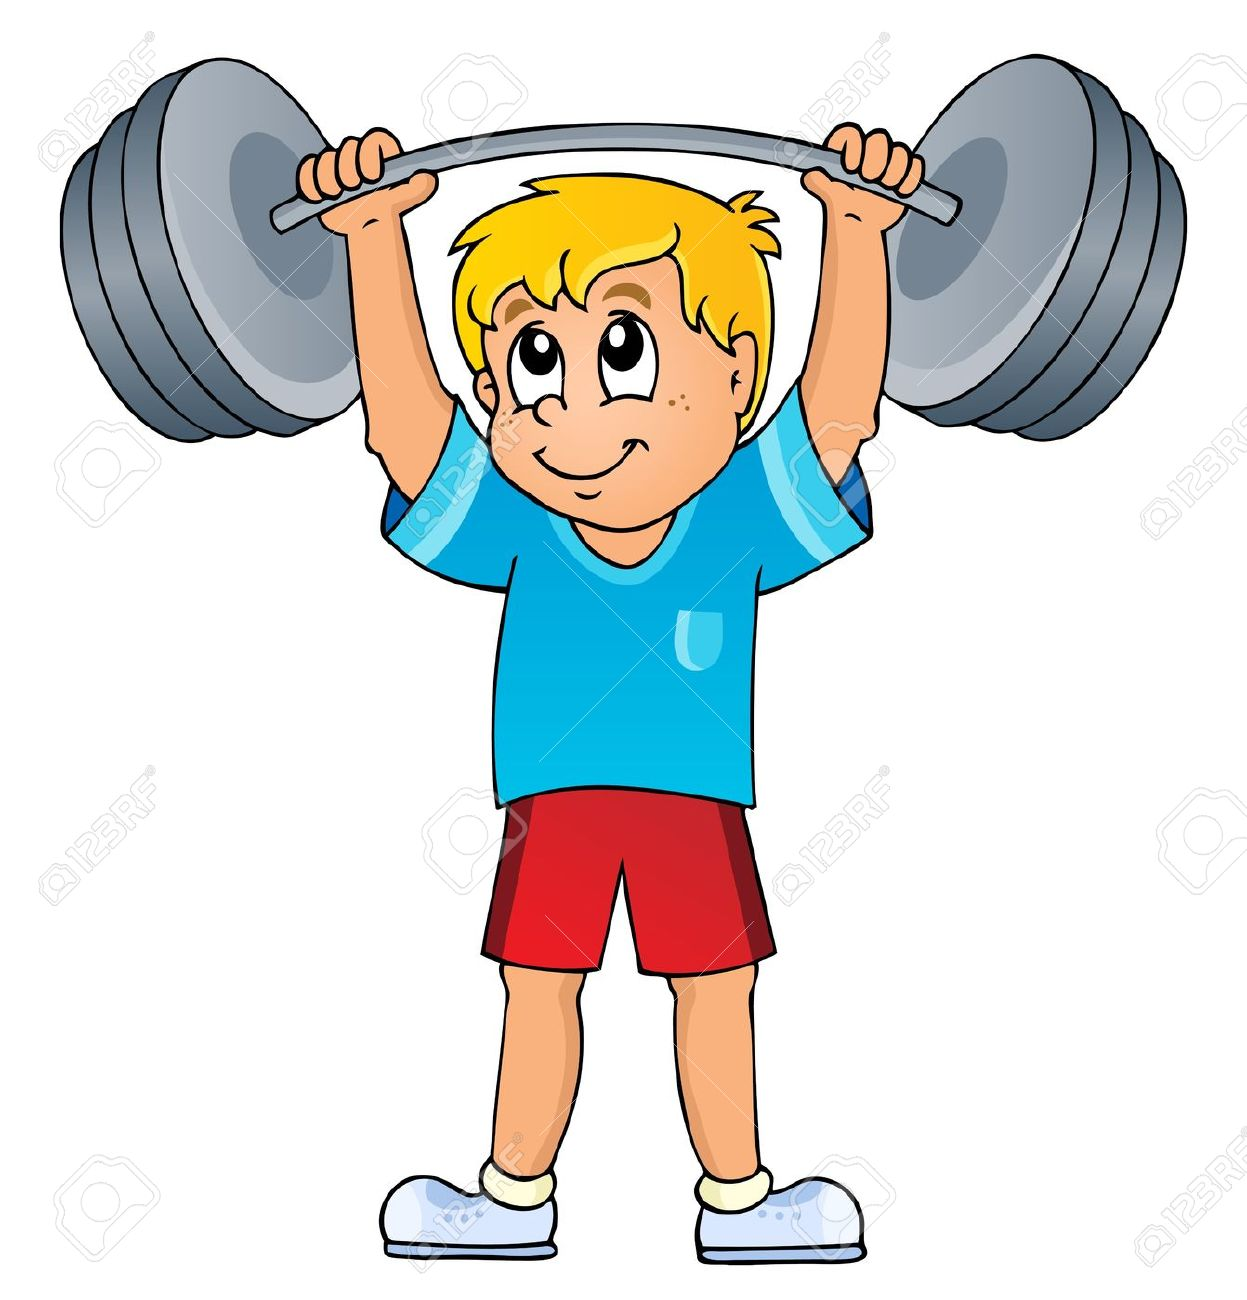 Weight clipart liftin.  collection of lifting